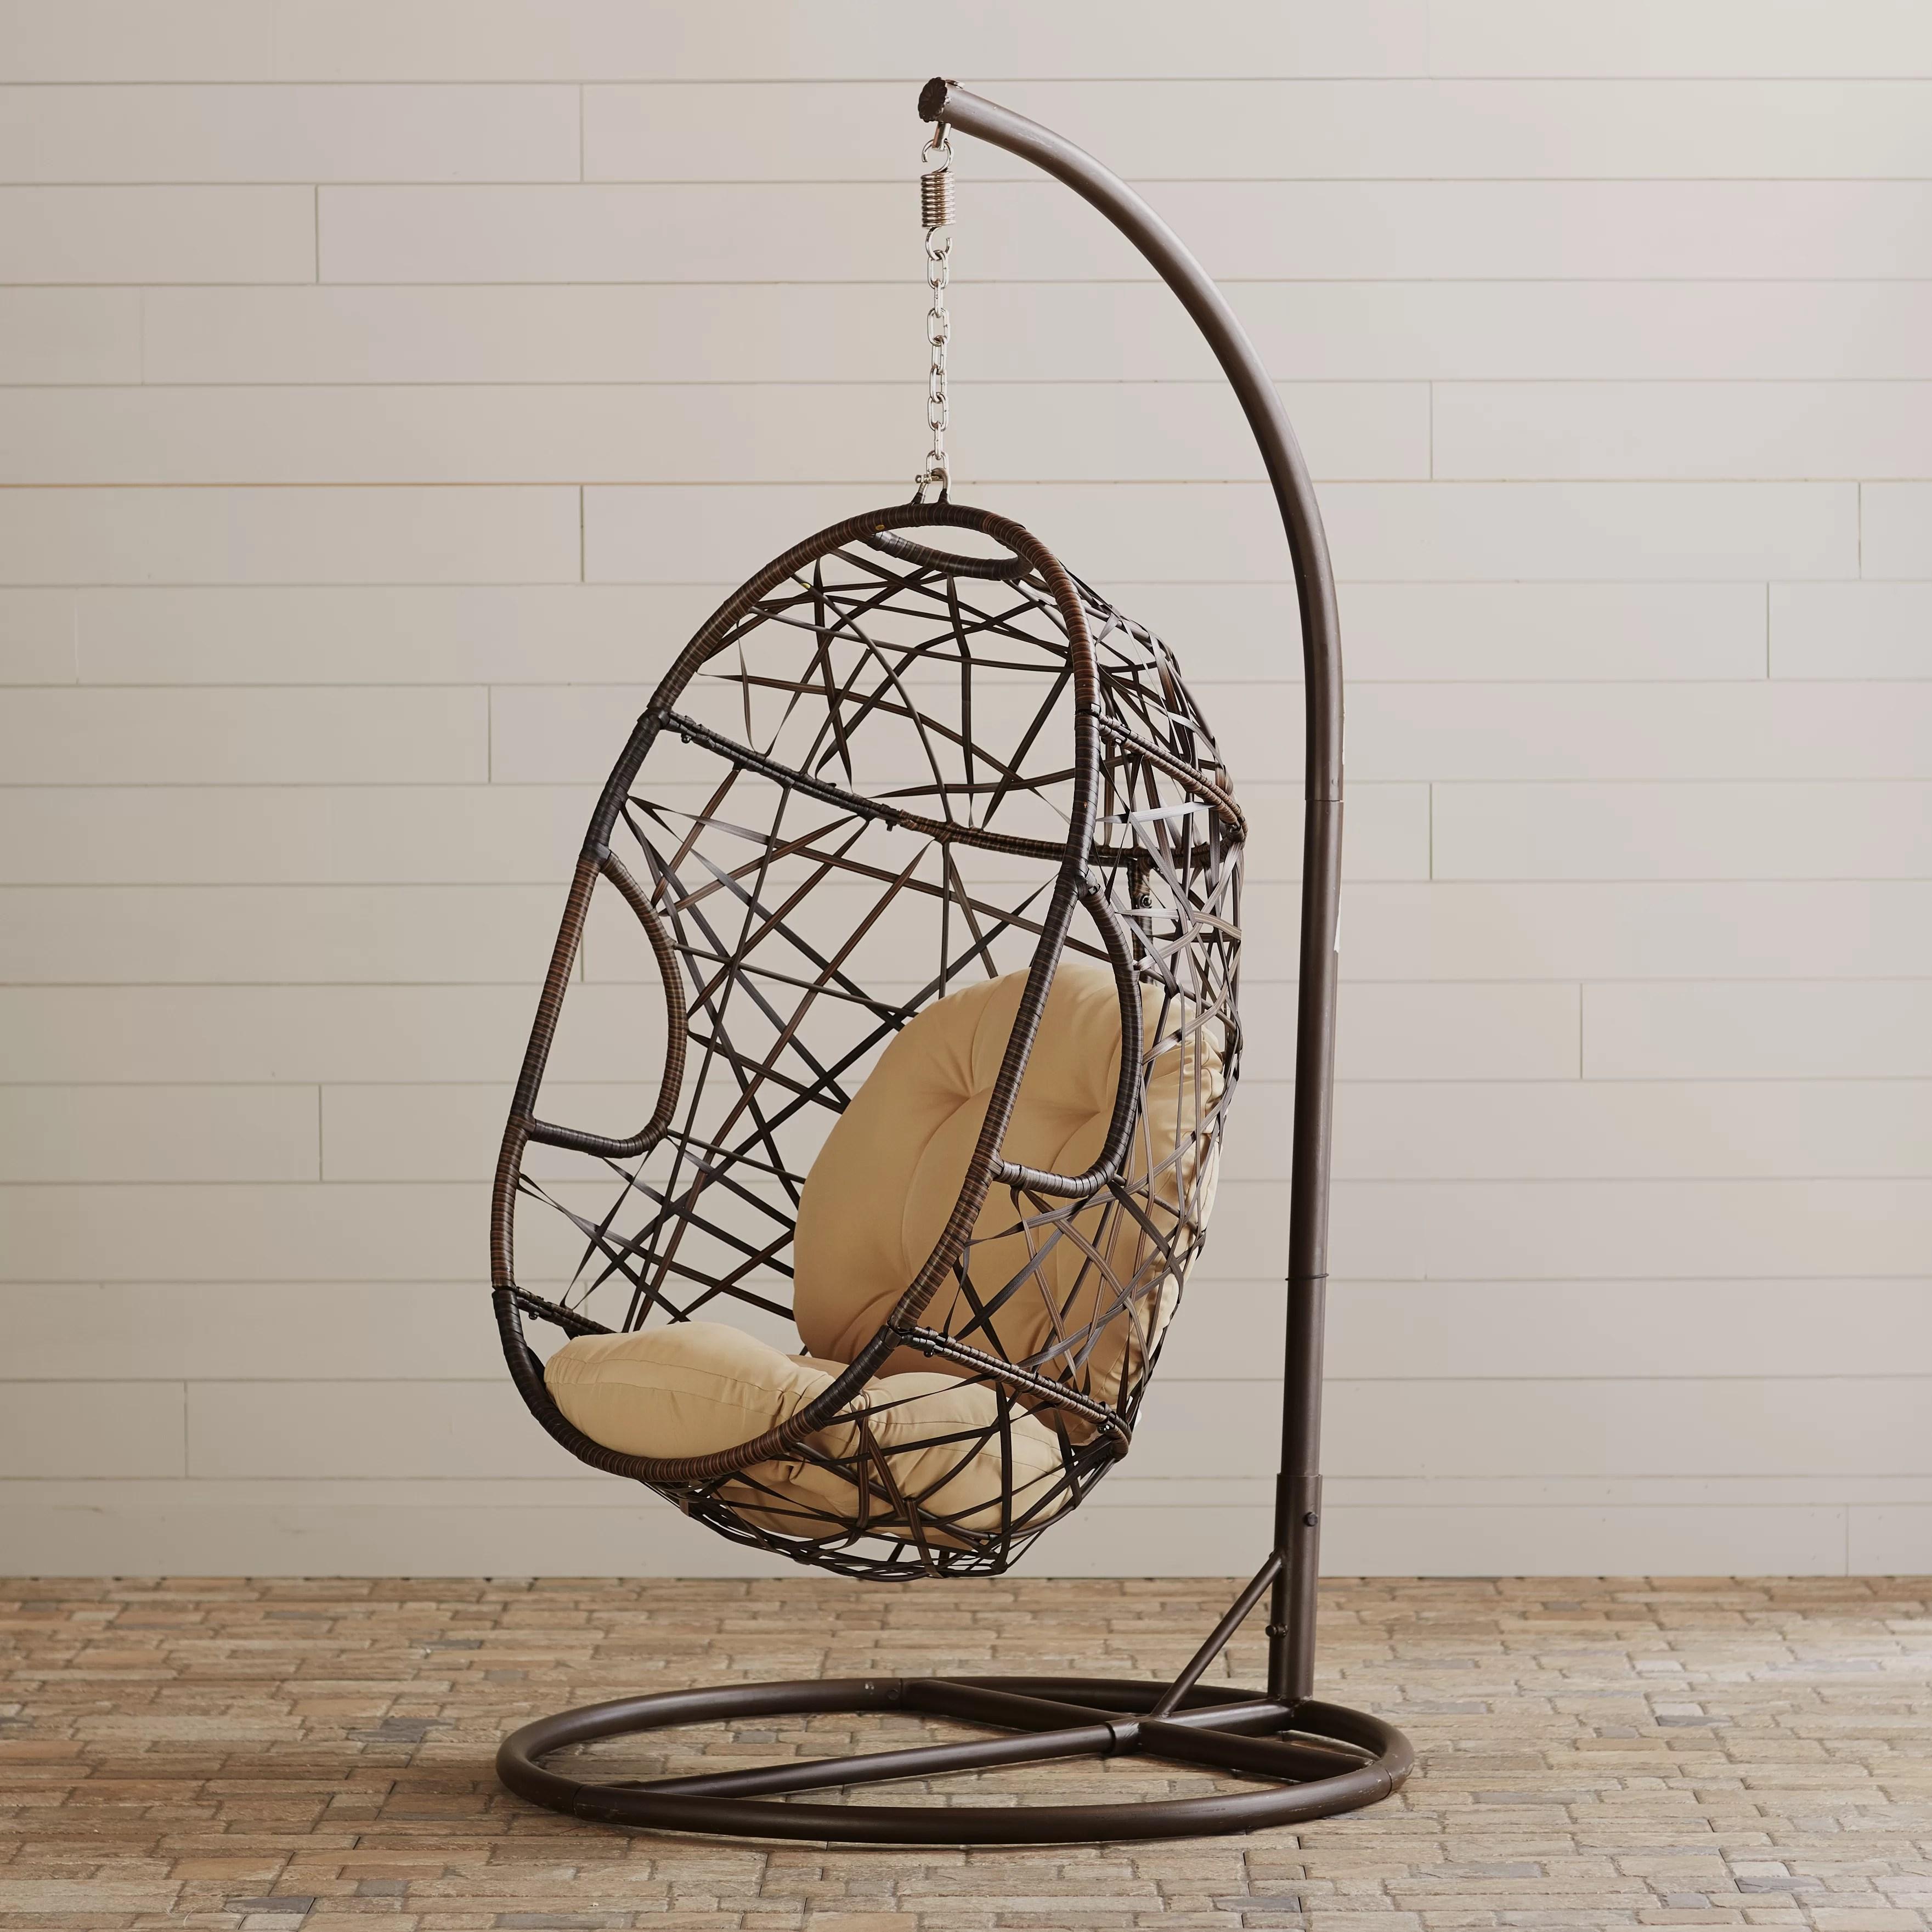 Egg Shaped Outdoor Swing Chair Duncombe Egg Shaped Outdoor Swing Chair With Stand